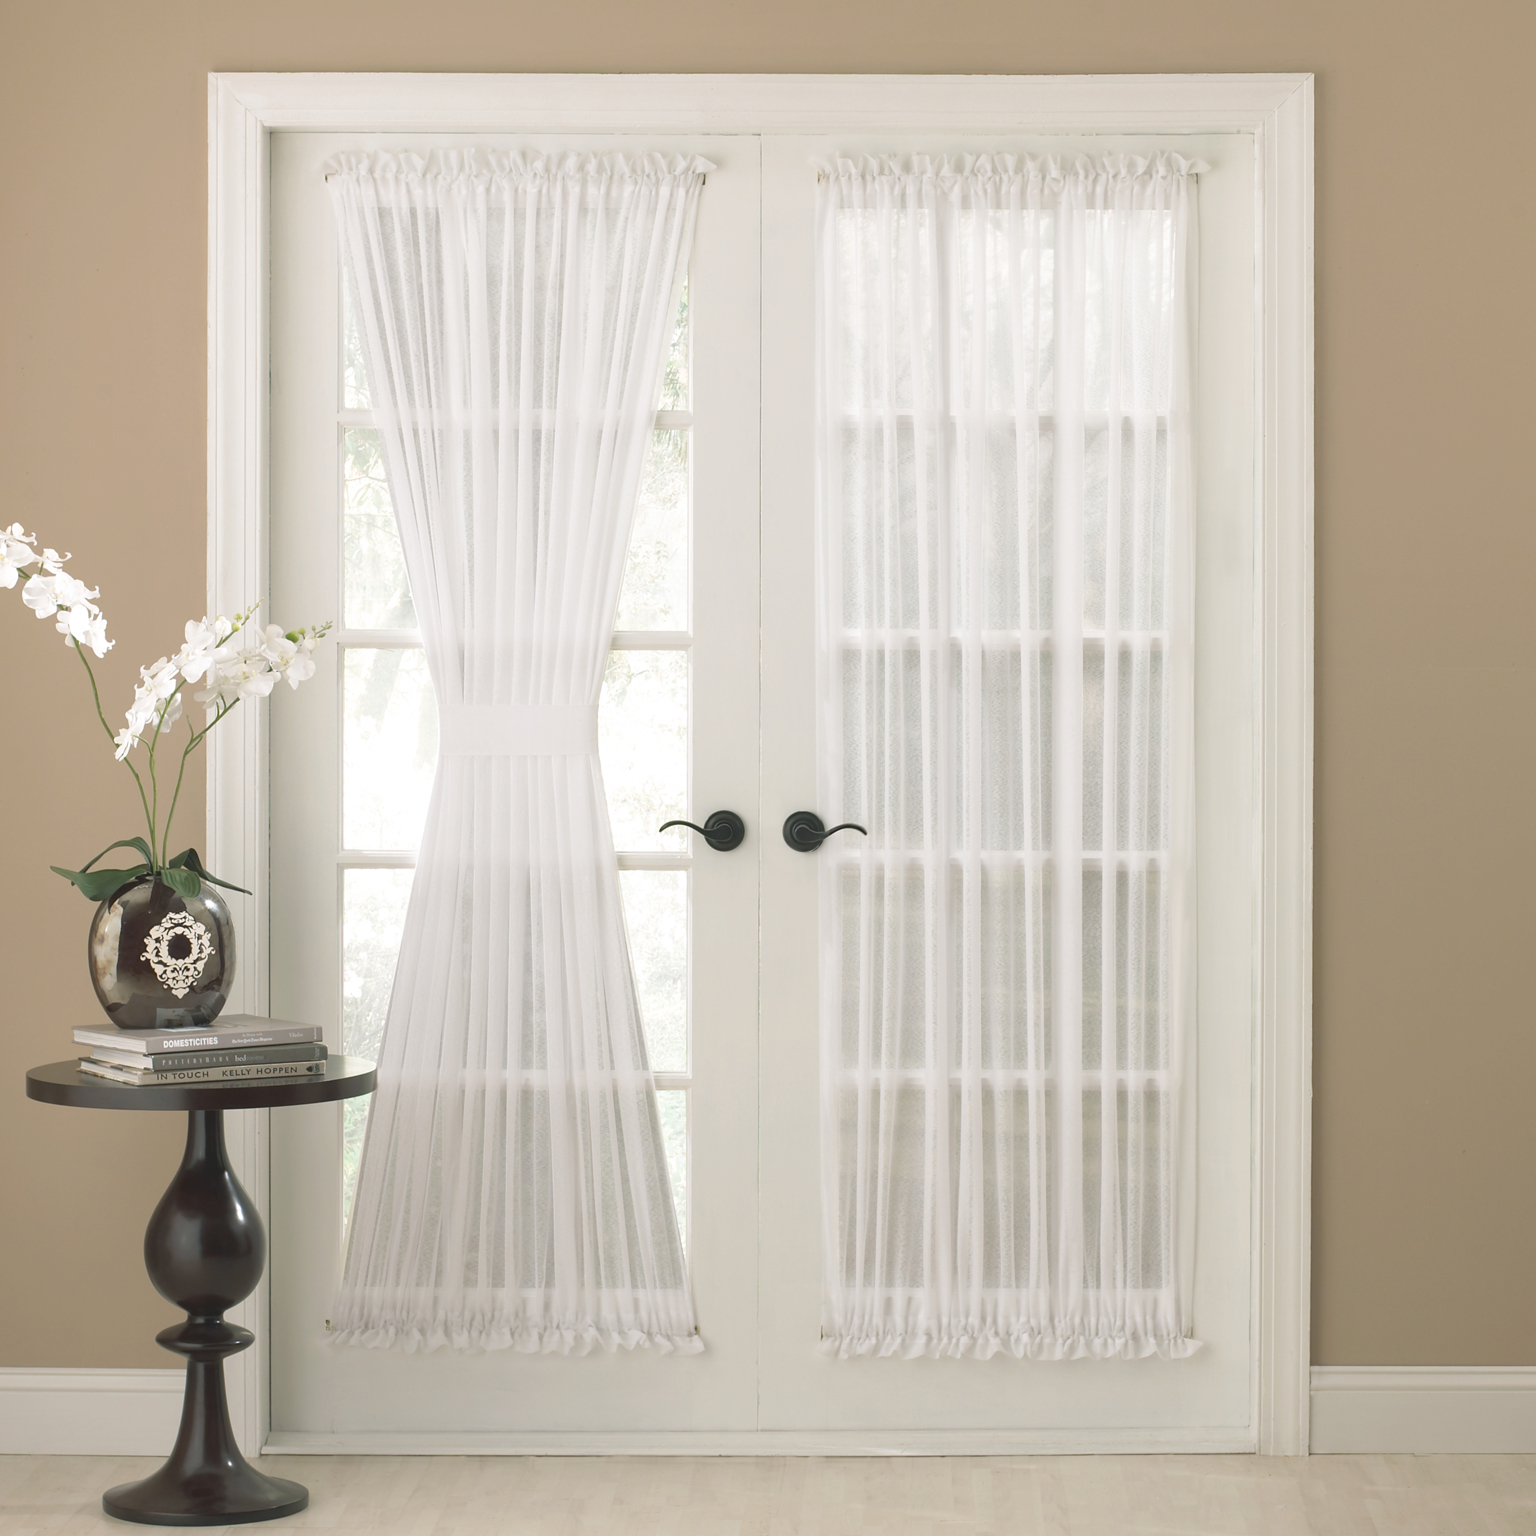 Door half window curtains - Door Half Window Curtains 56